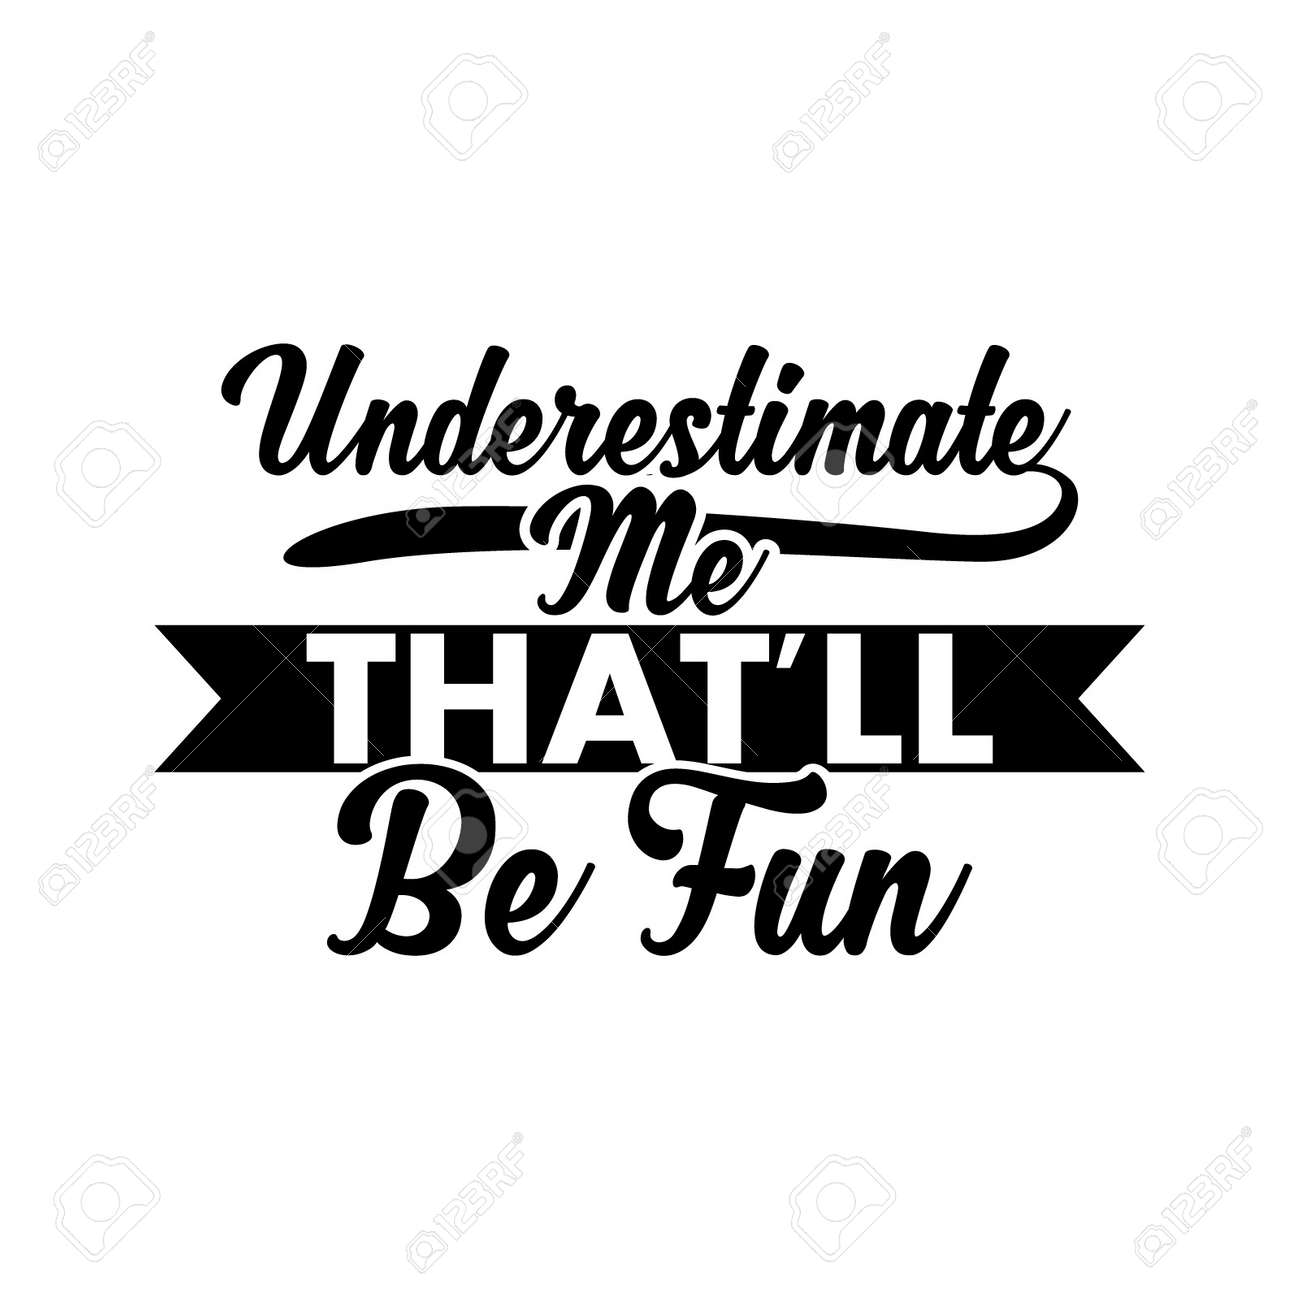 Underestimate Me That'll Be Fun. Typography Lettering Design, Vector Illustration - 156884563